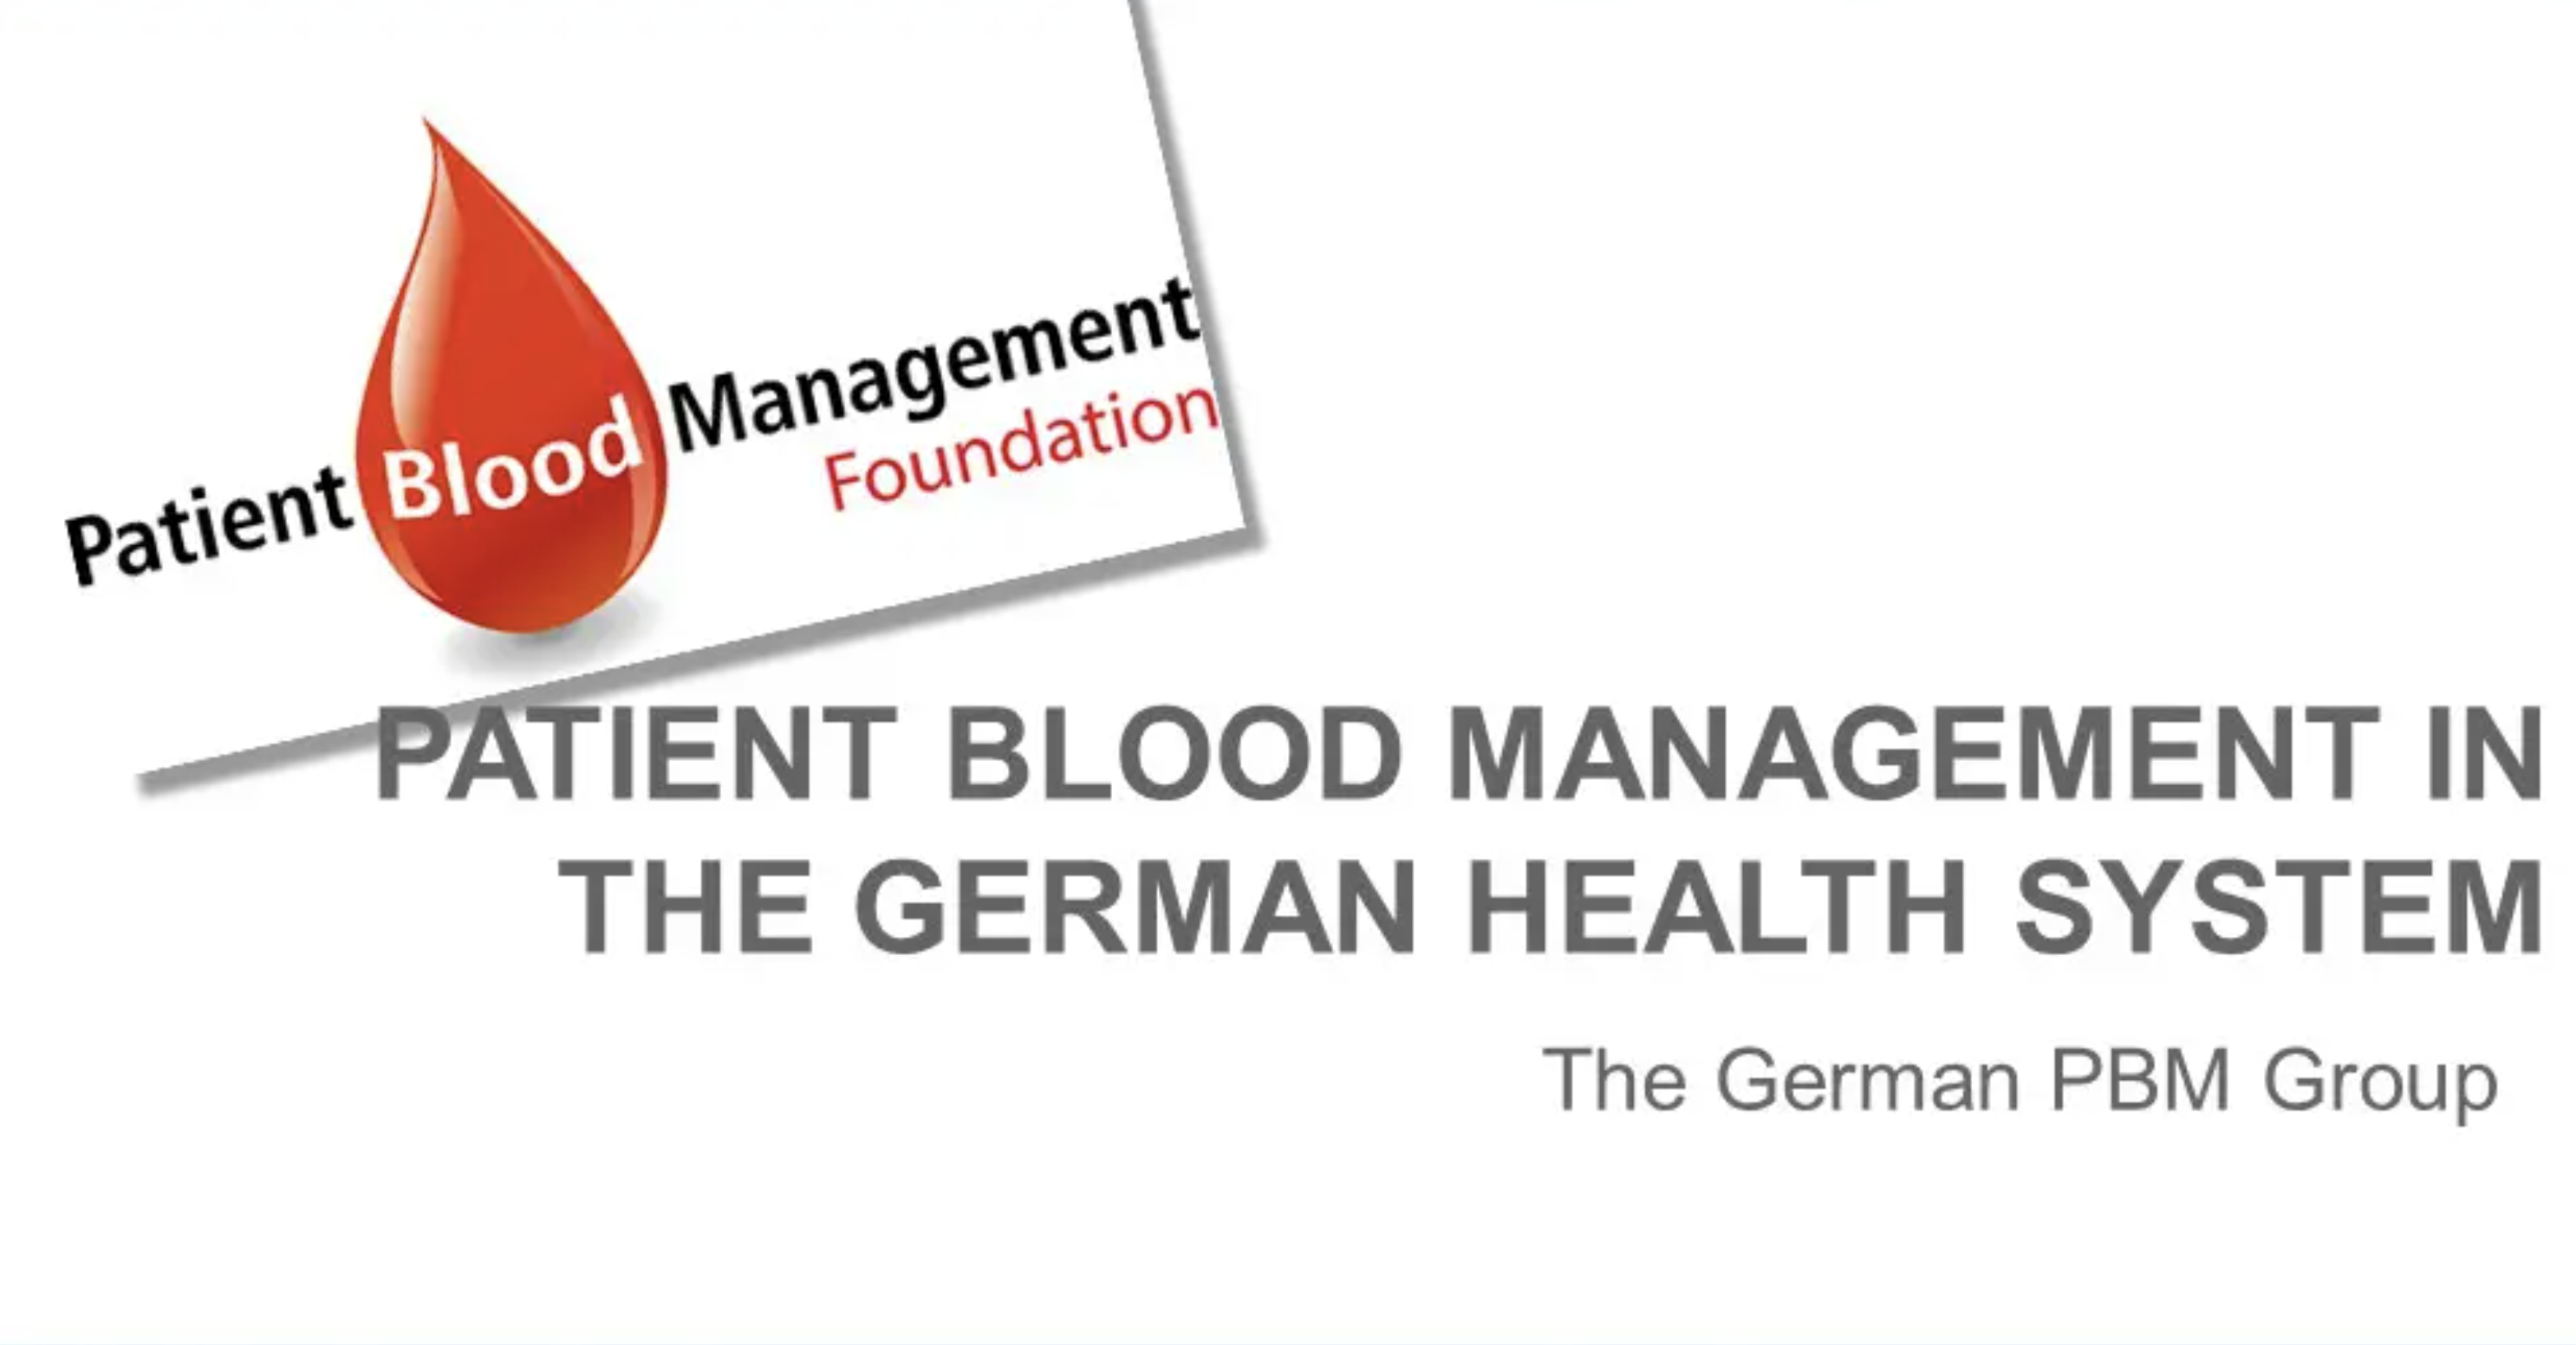 PATIENT BLOOD MANAGEMENT IN THE GERMAN HEALTH SYSTEM - P. Meybohm